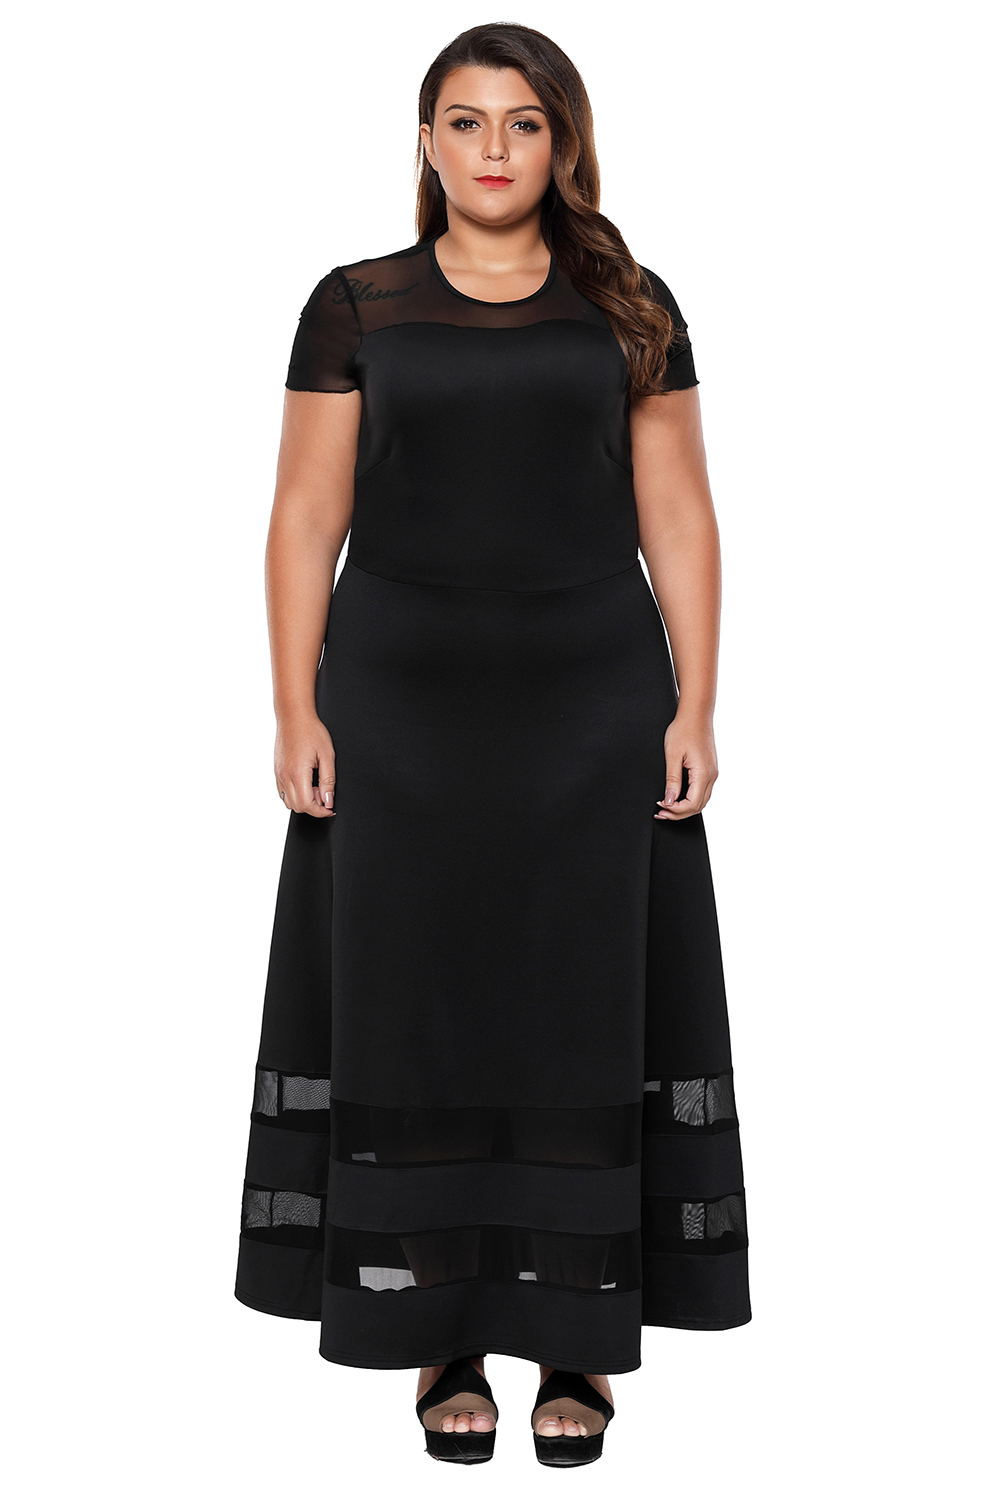 US$30 Zkess Black Organza Trim Plus Size Cocktail Dresses